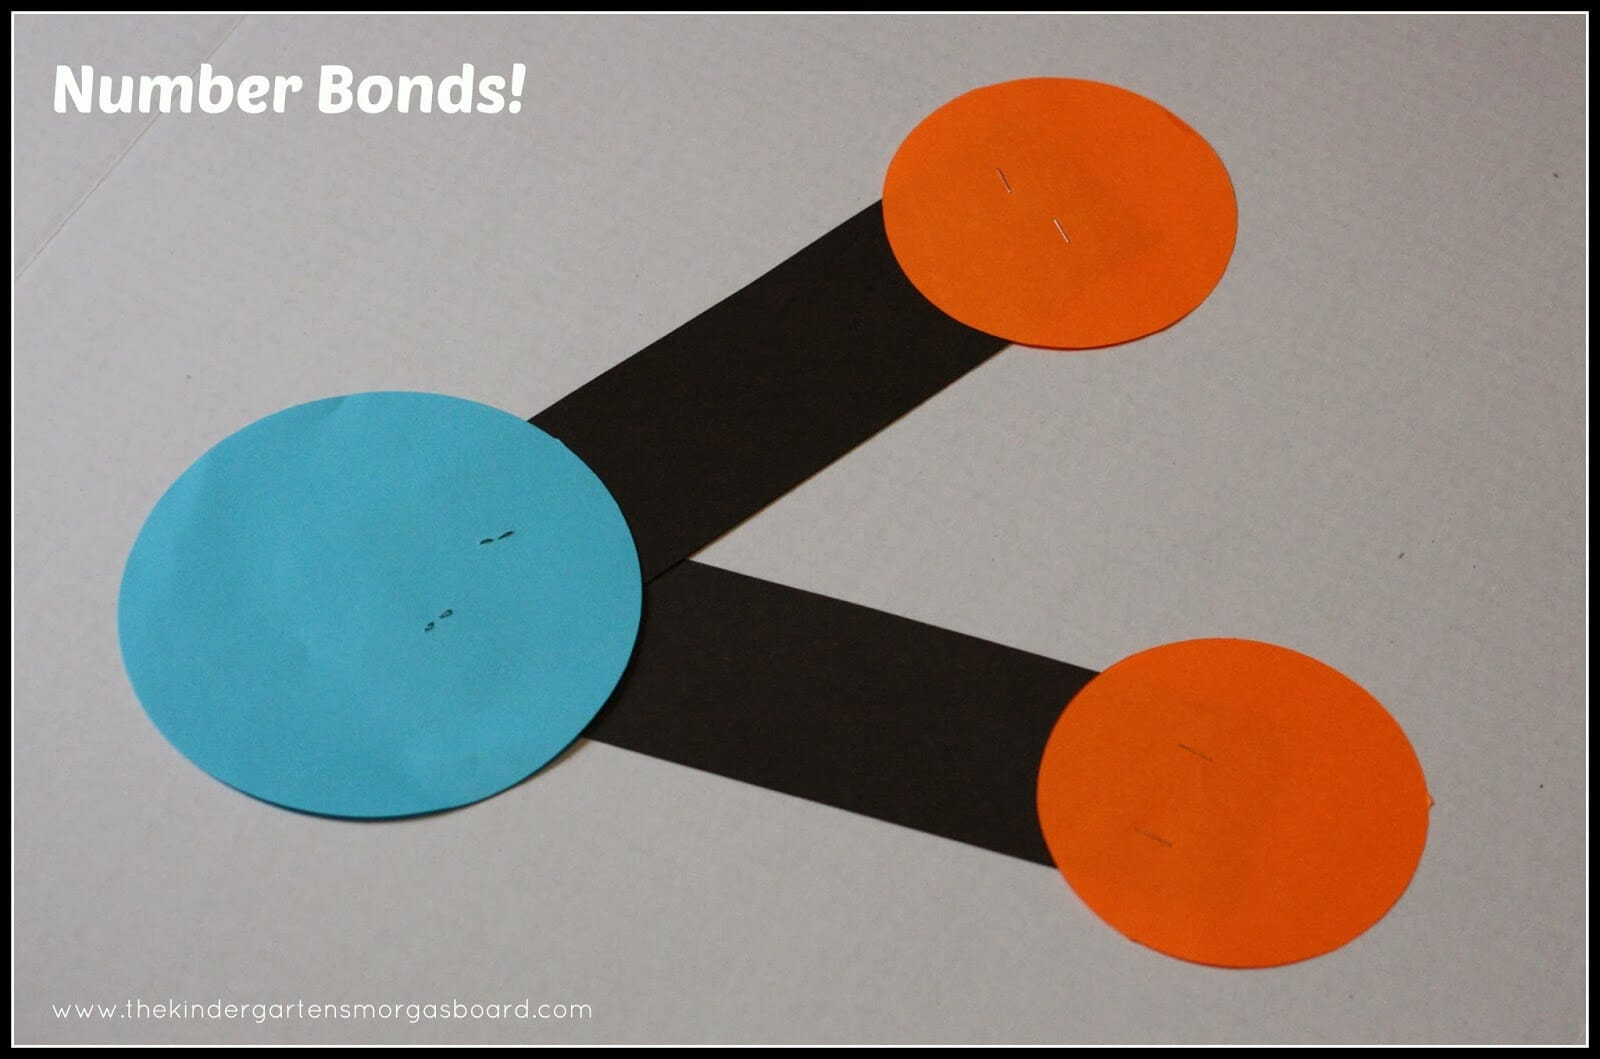 Number Bonds Lesson The Kindergarten Smorgasboard